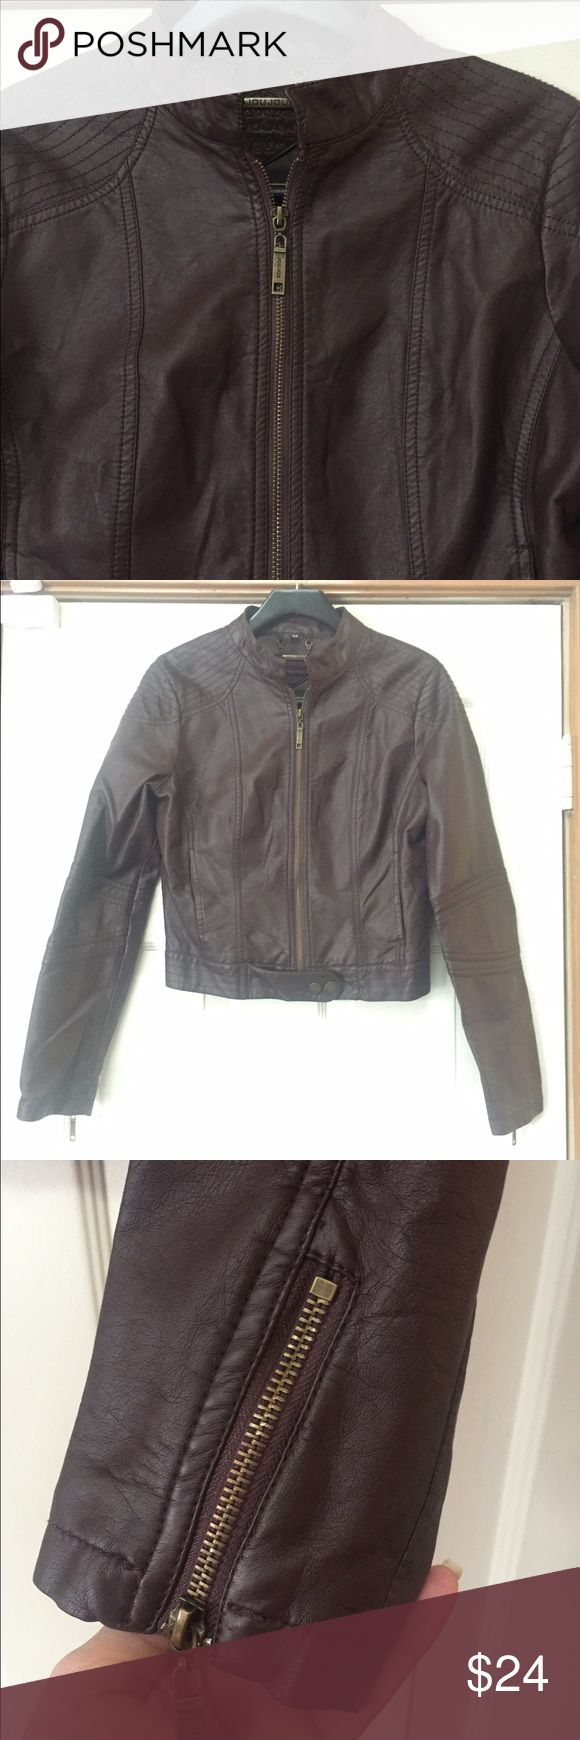 Jou Jou faux leather brown bomber jacket M EUC This is like new. Smoke and pet free home. Bundle discount 20% Jou Jou Jackets & Coats